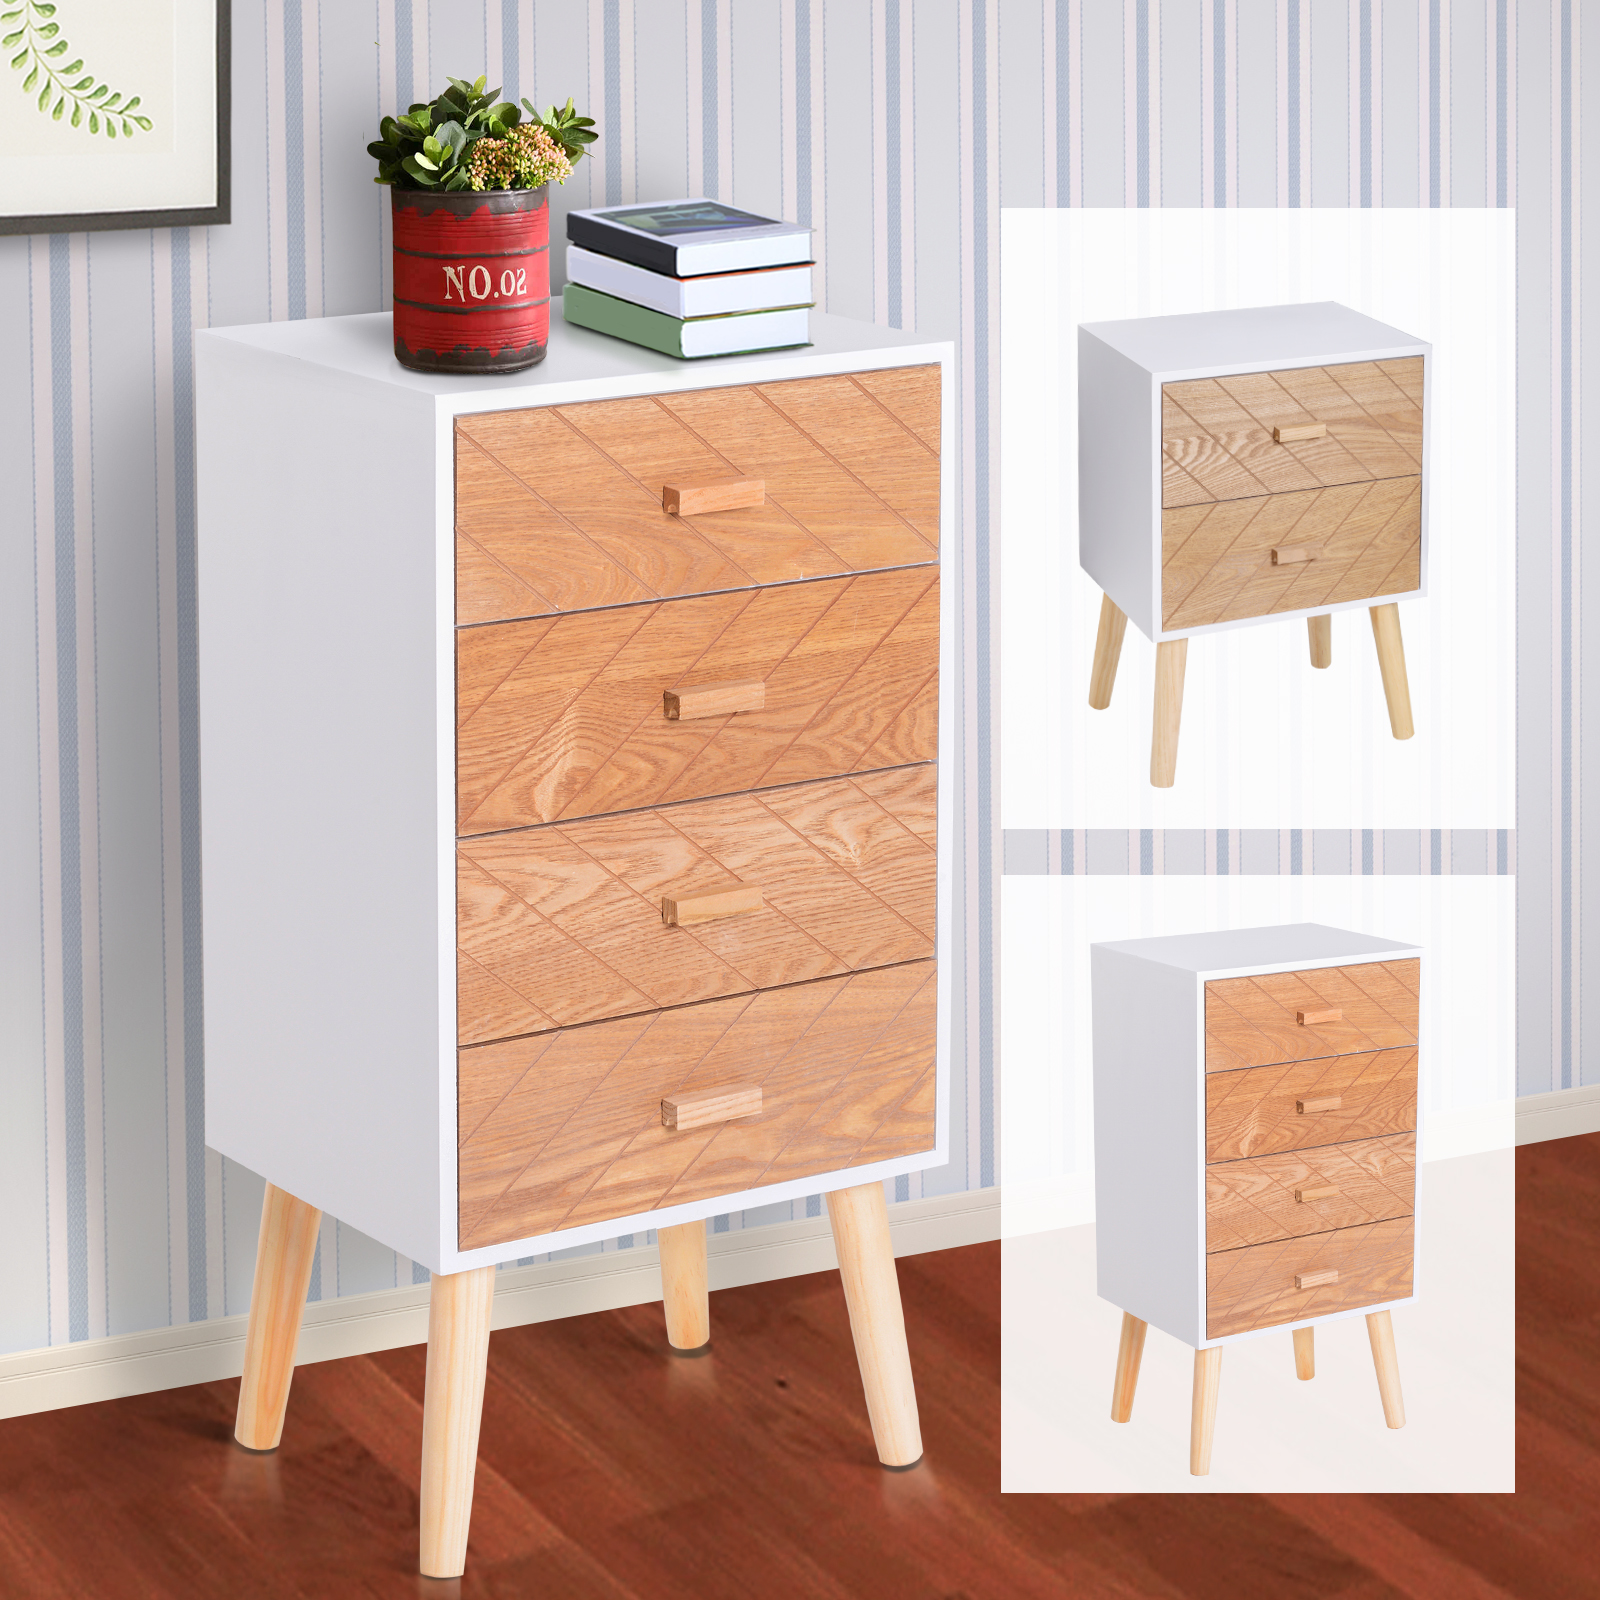 Details About Nordic Style Scandinavian Bedside Table Drawers Cabinet Solid Wood Legs Bedroom